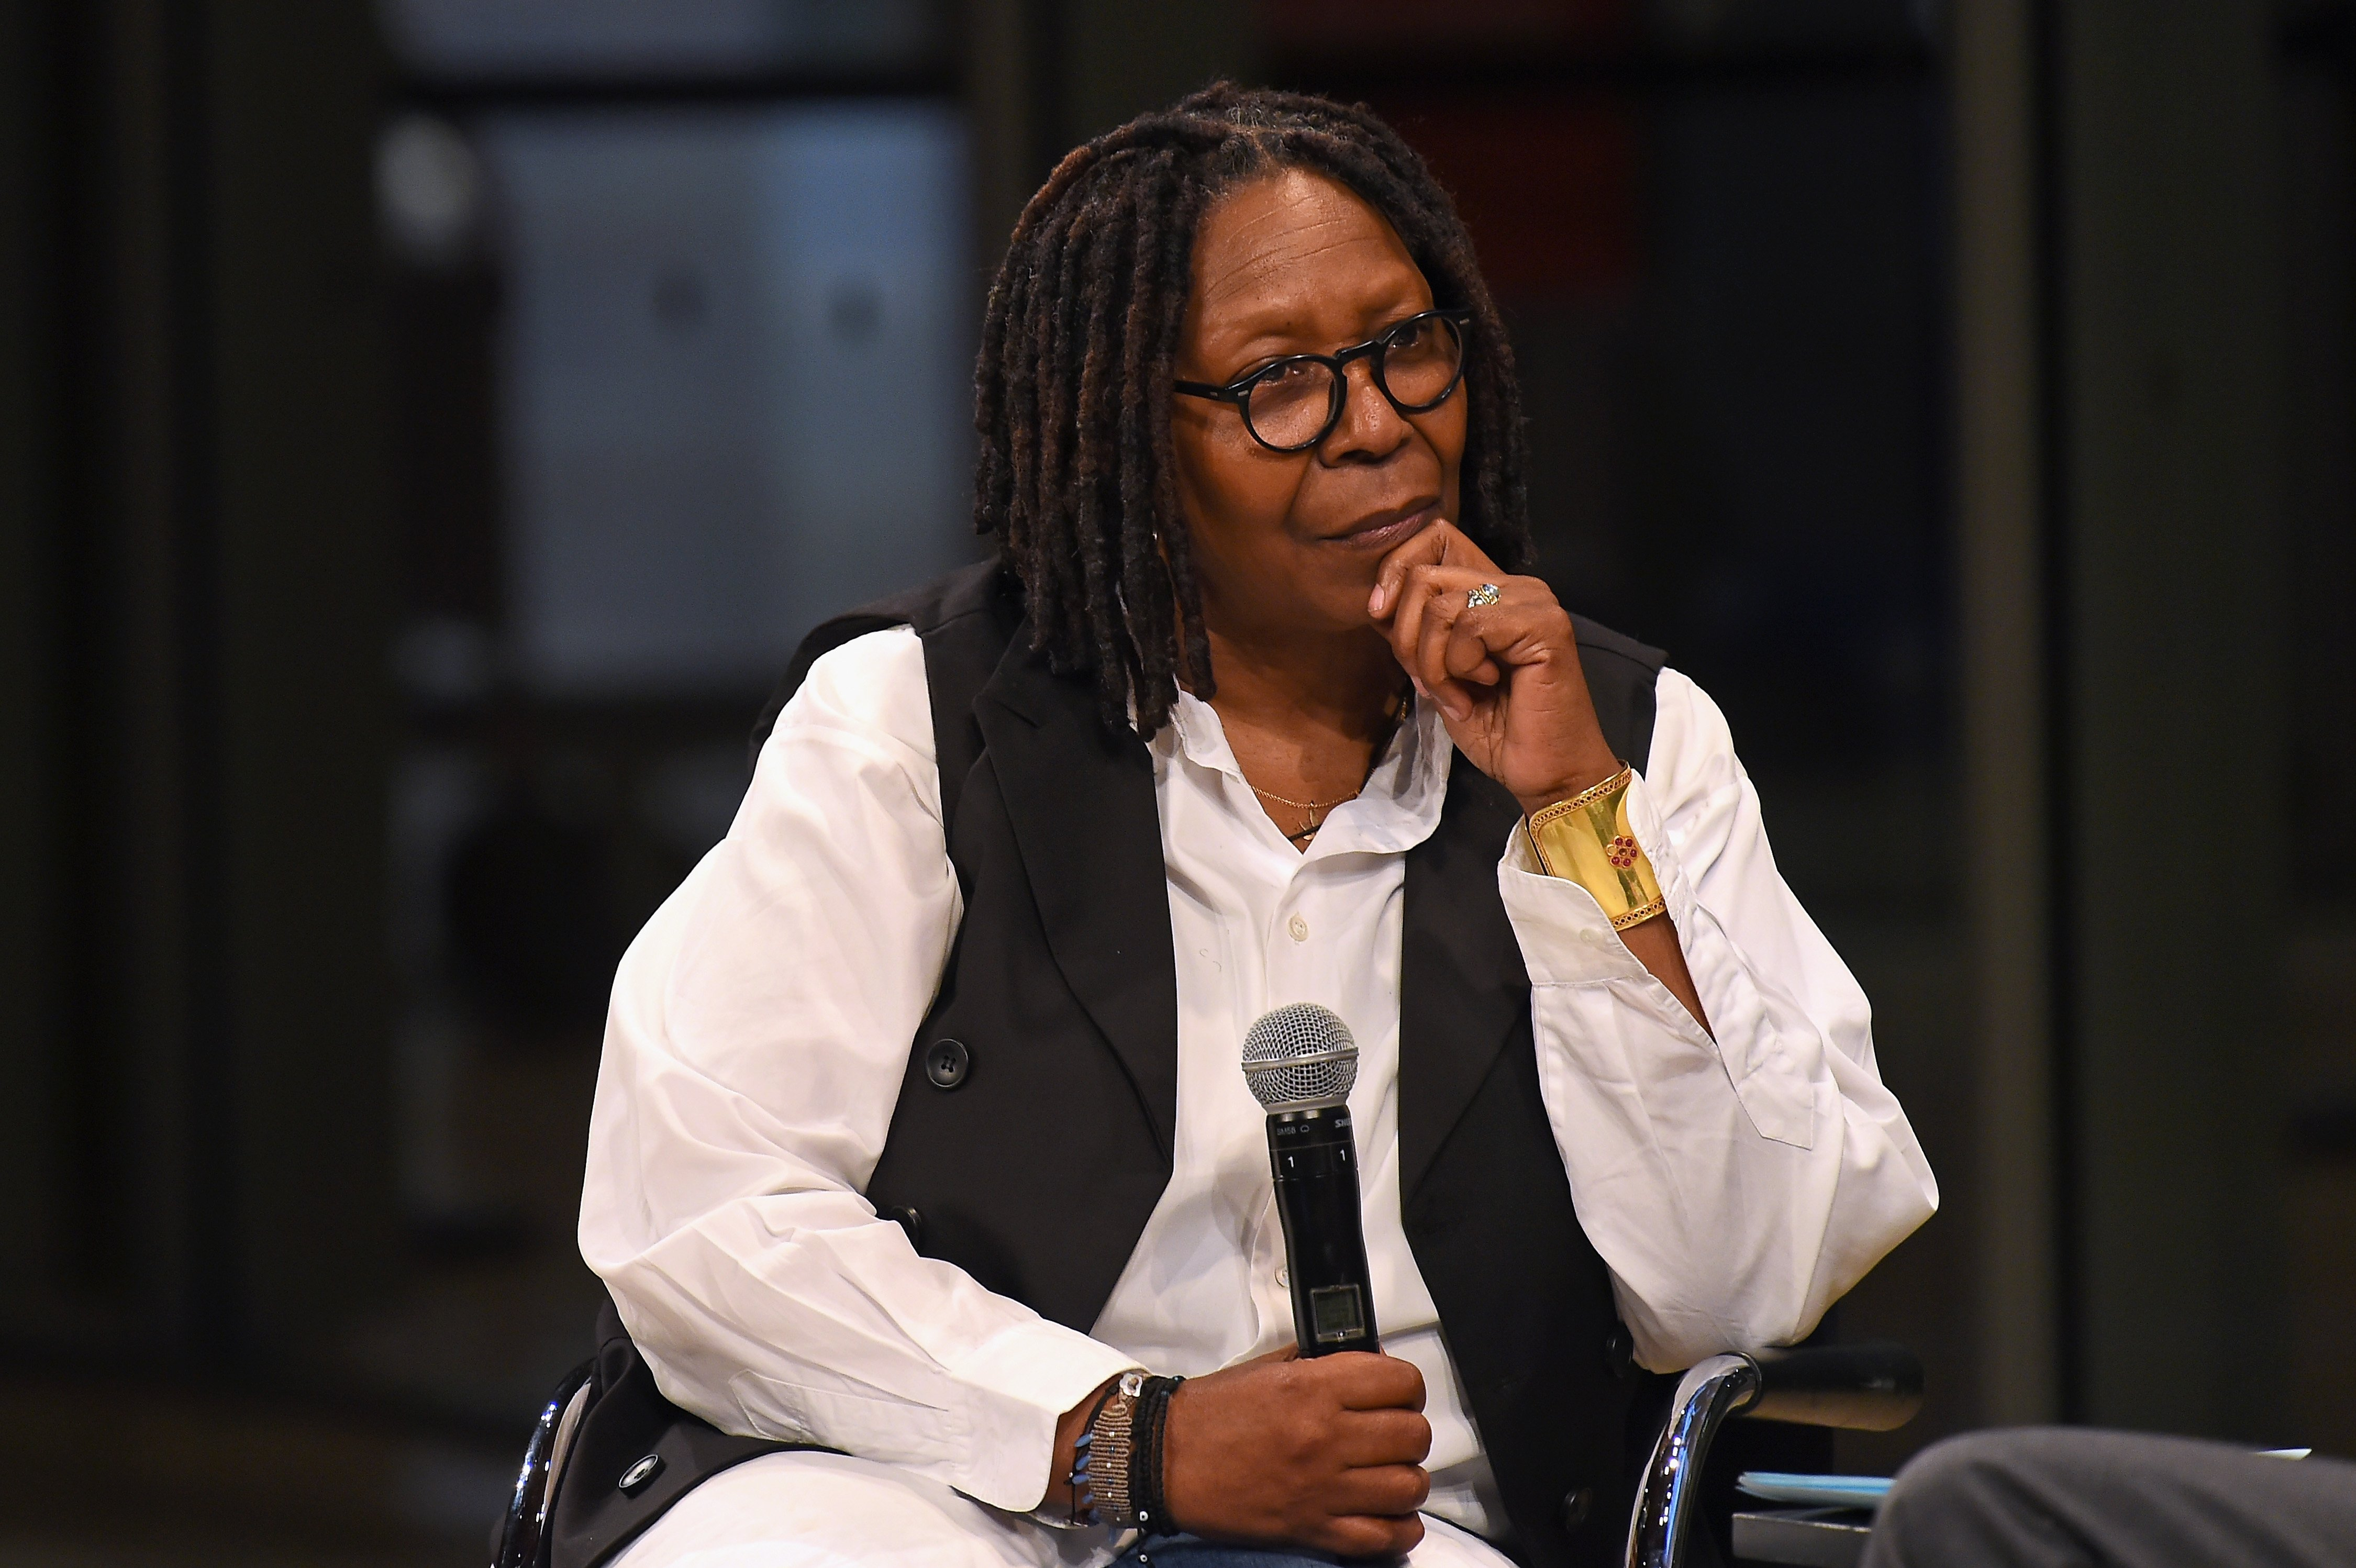 Whoopi Goldberg speaks onstage during the Academy Museum Conversation at The Times Center, featuring Whoopi Goldberg, Kerry Brougher and Renzo Piano on April 16, 2018 | Photo: GettyImages